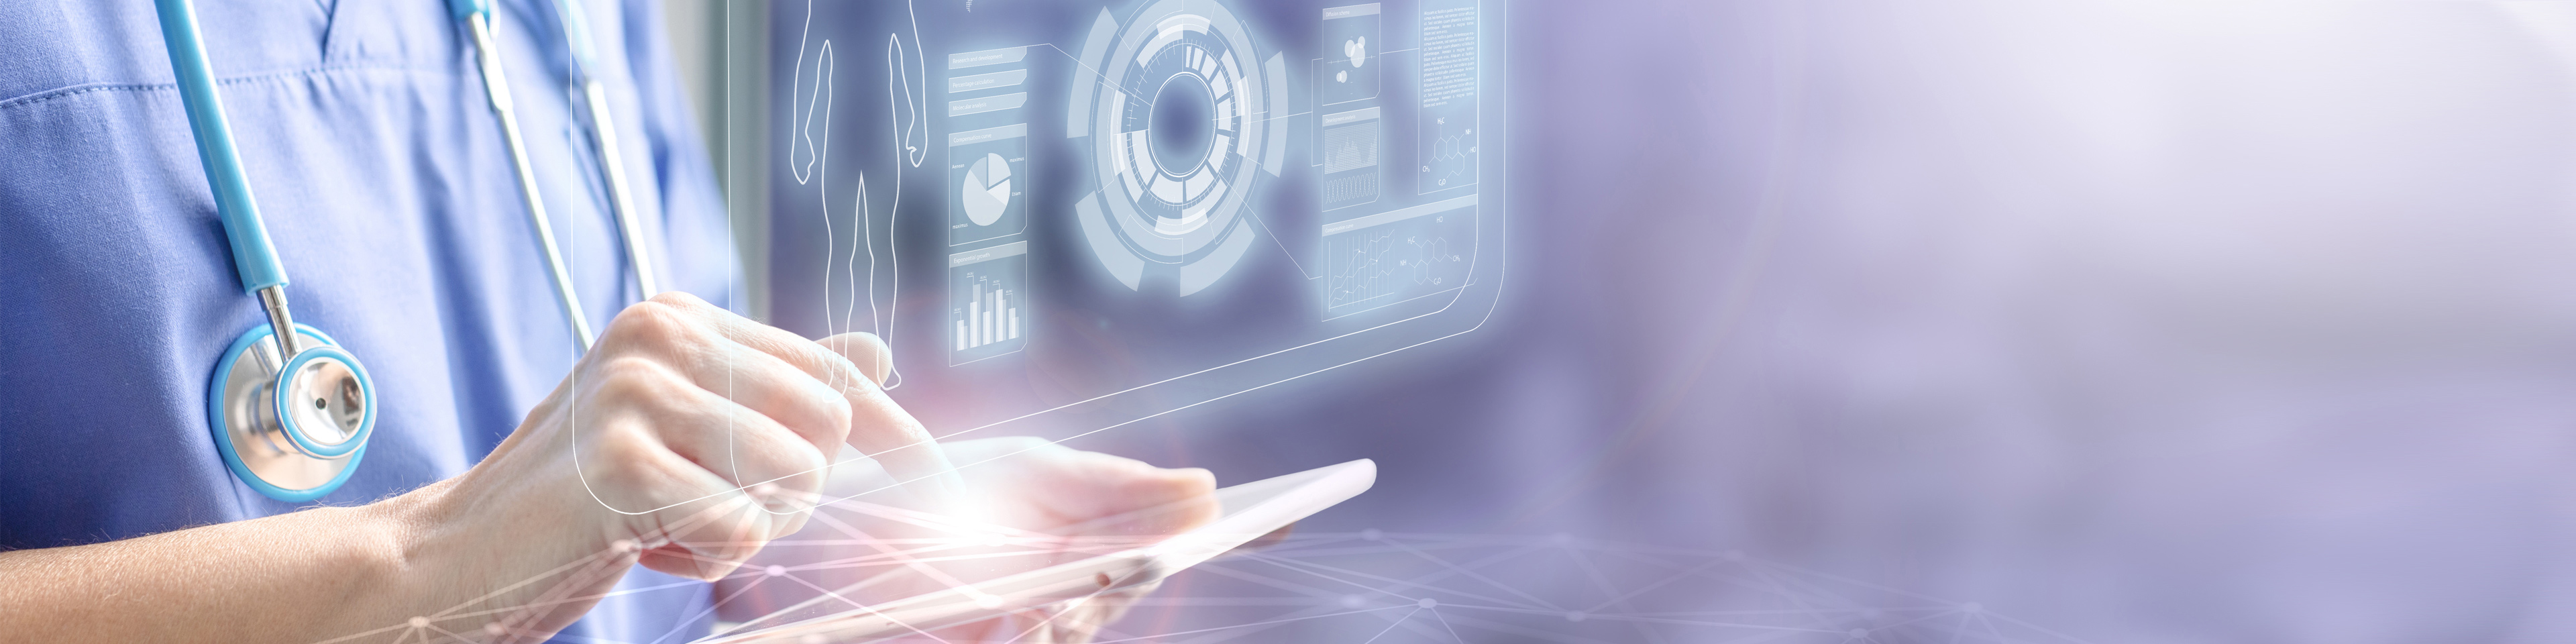 Female doctor touching a tablet displaying the patient's data hologram concept of electronic medical information and futuristic technology in health care